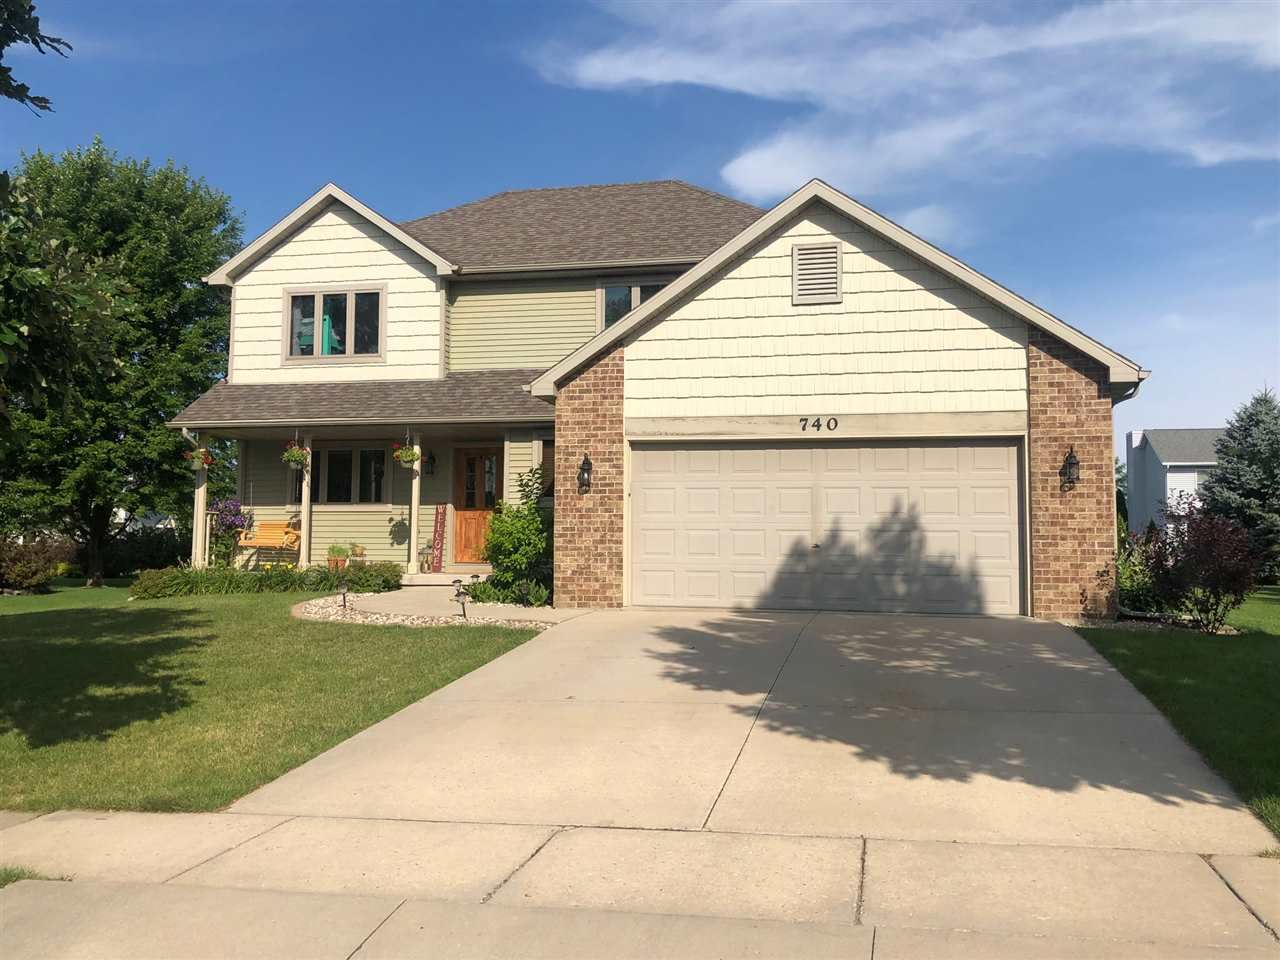 740 Valley View Dr, Stoughton, WI 53589 - #: 1888368